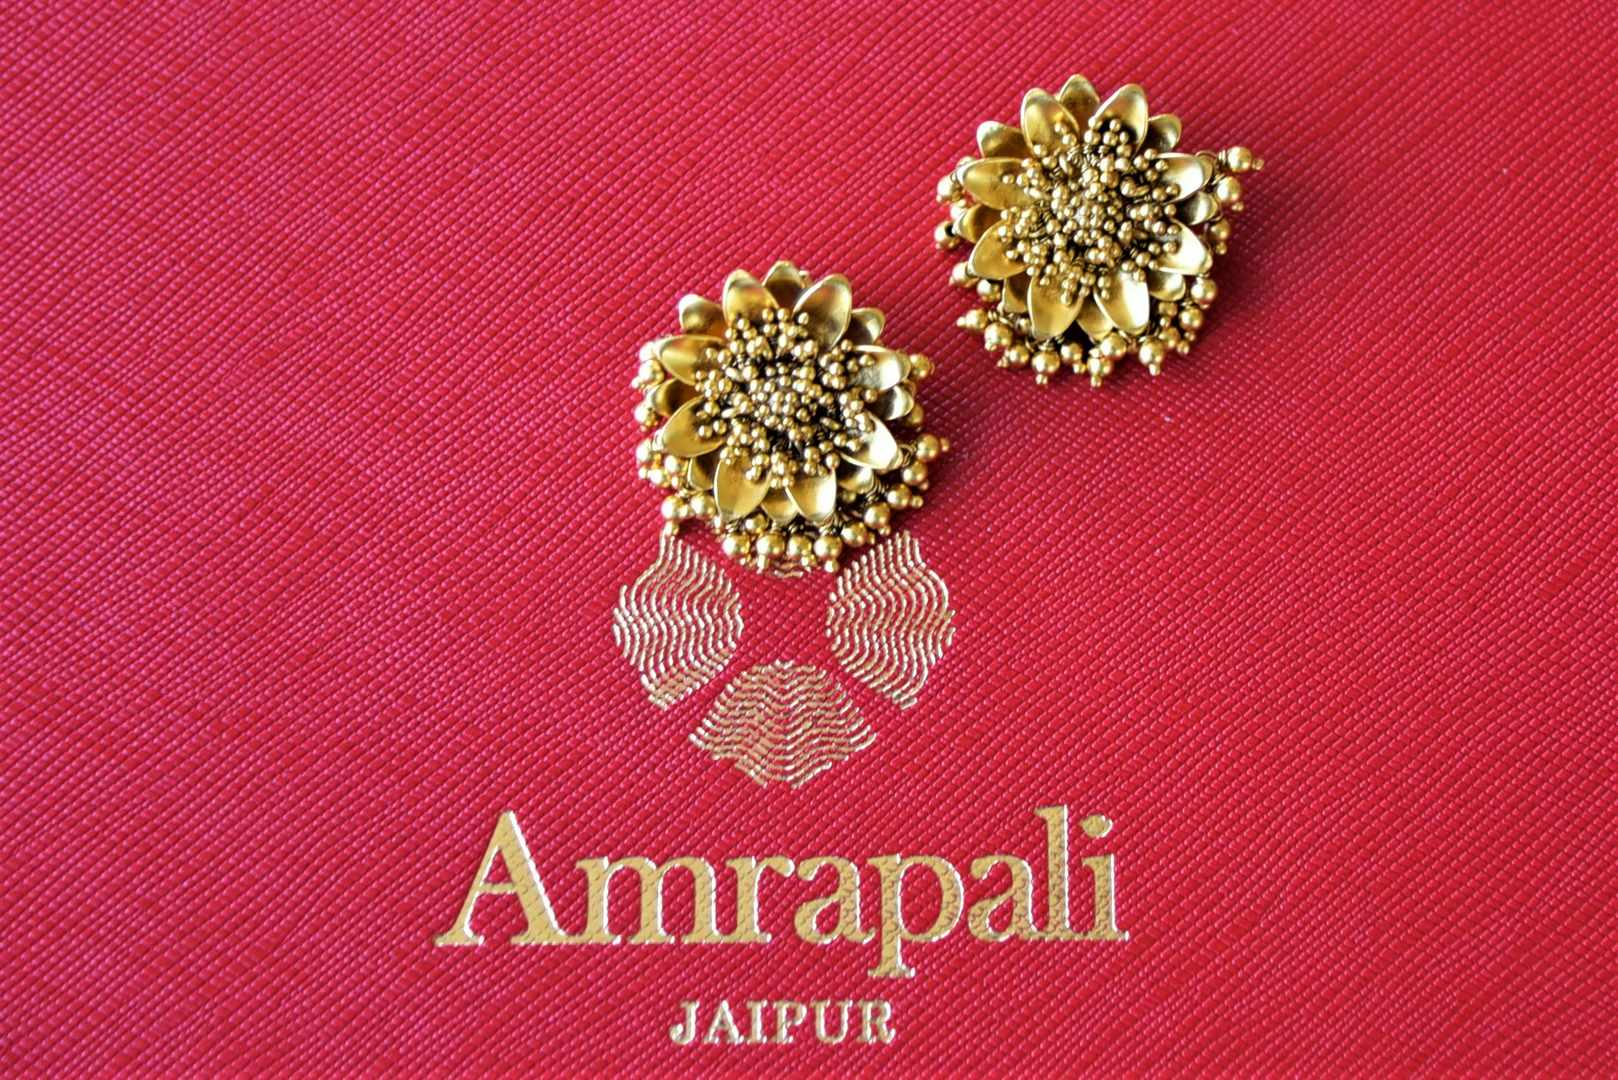 Buy Amrapali silver gold plated flower stud earrings online in USA with golden beads. Elevate your ethnic attires with exquisite Indian jewelry, silver earrings, silver gold plated necklaces from Pure Elegance Indian fashion store in USA.-flatlay